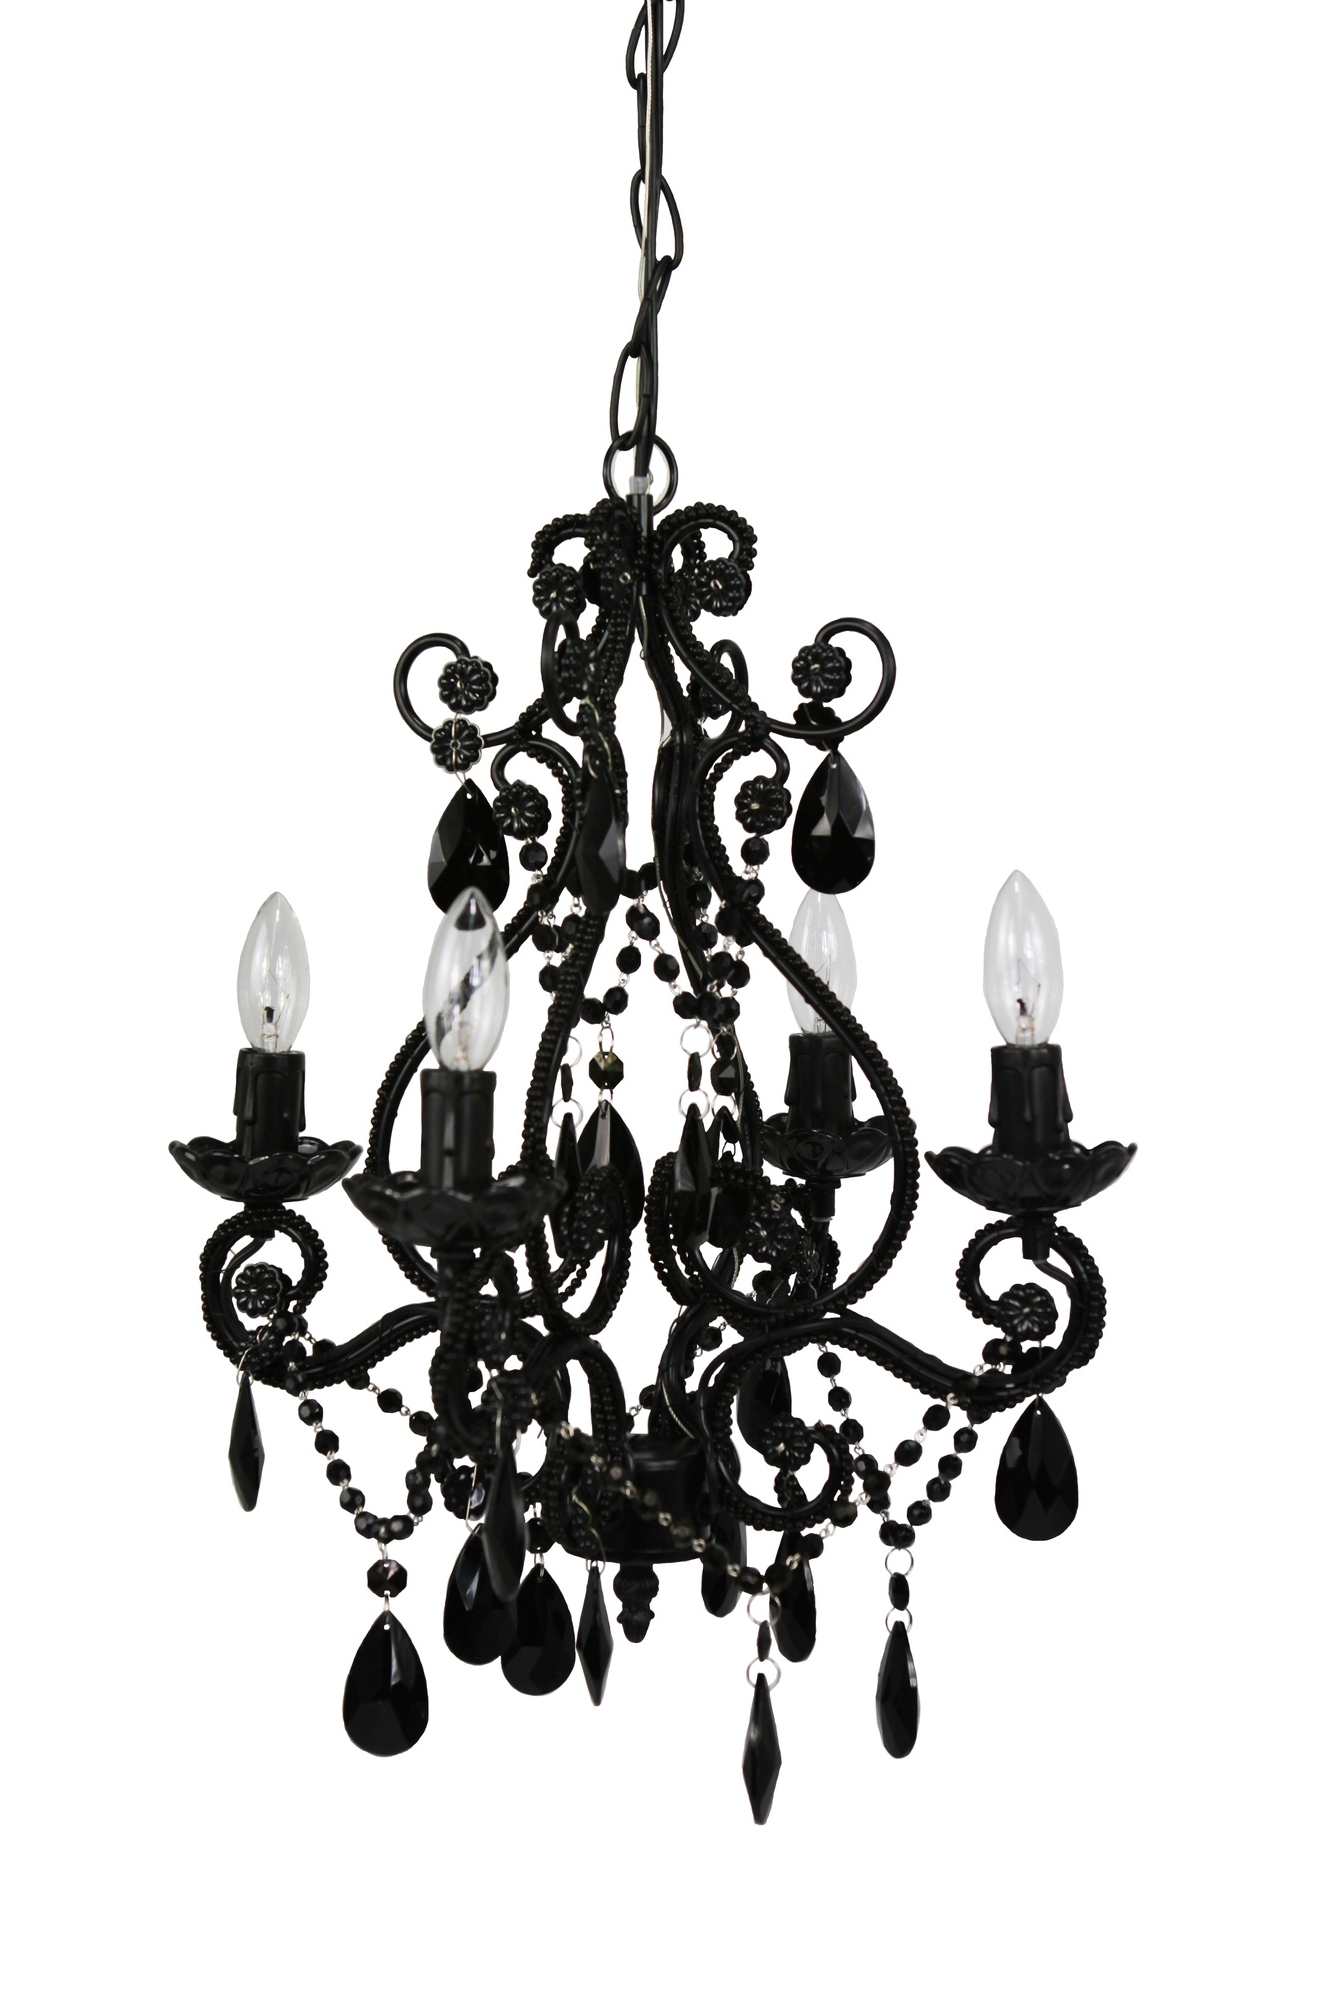 Cheap Chandelier, Chandeliers And Modern Throughout Antique Black Chandelier (View 11 of 20)